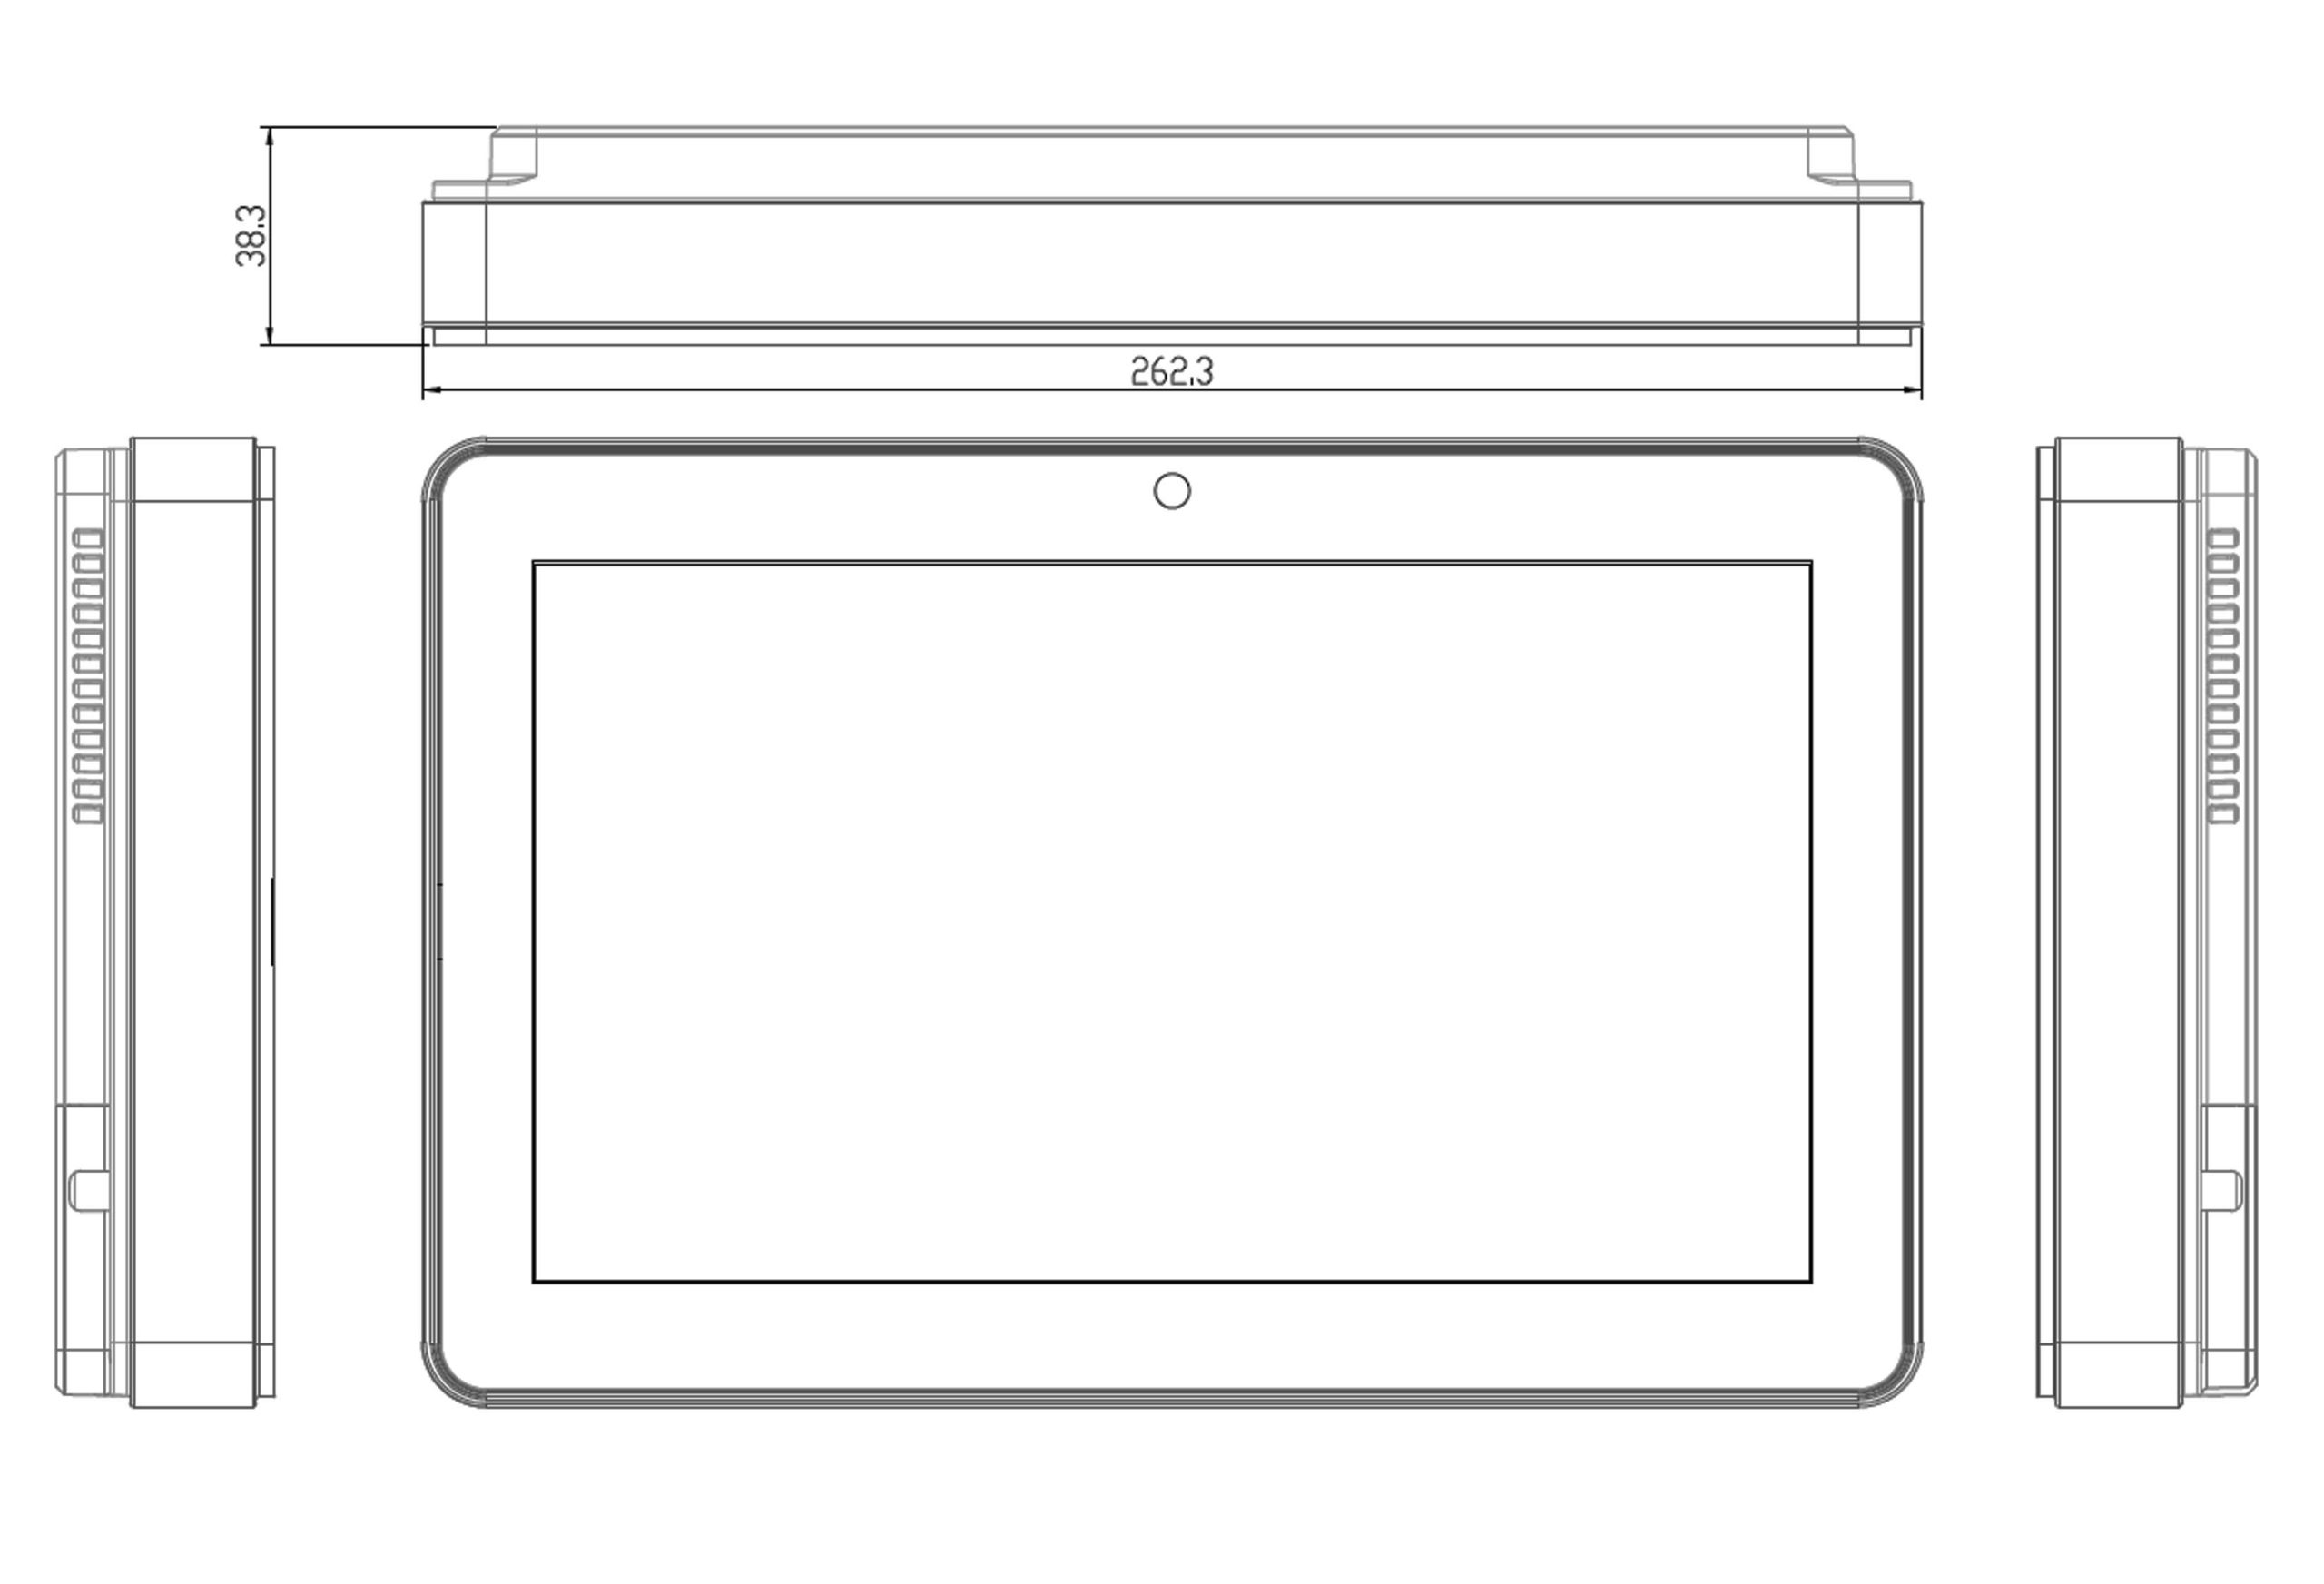 TP-5040-10M Medical Computer Technical Drawings